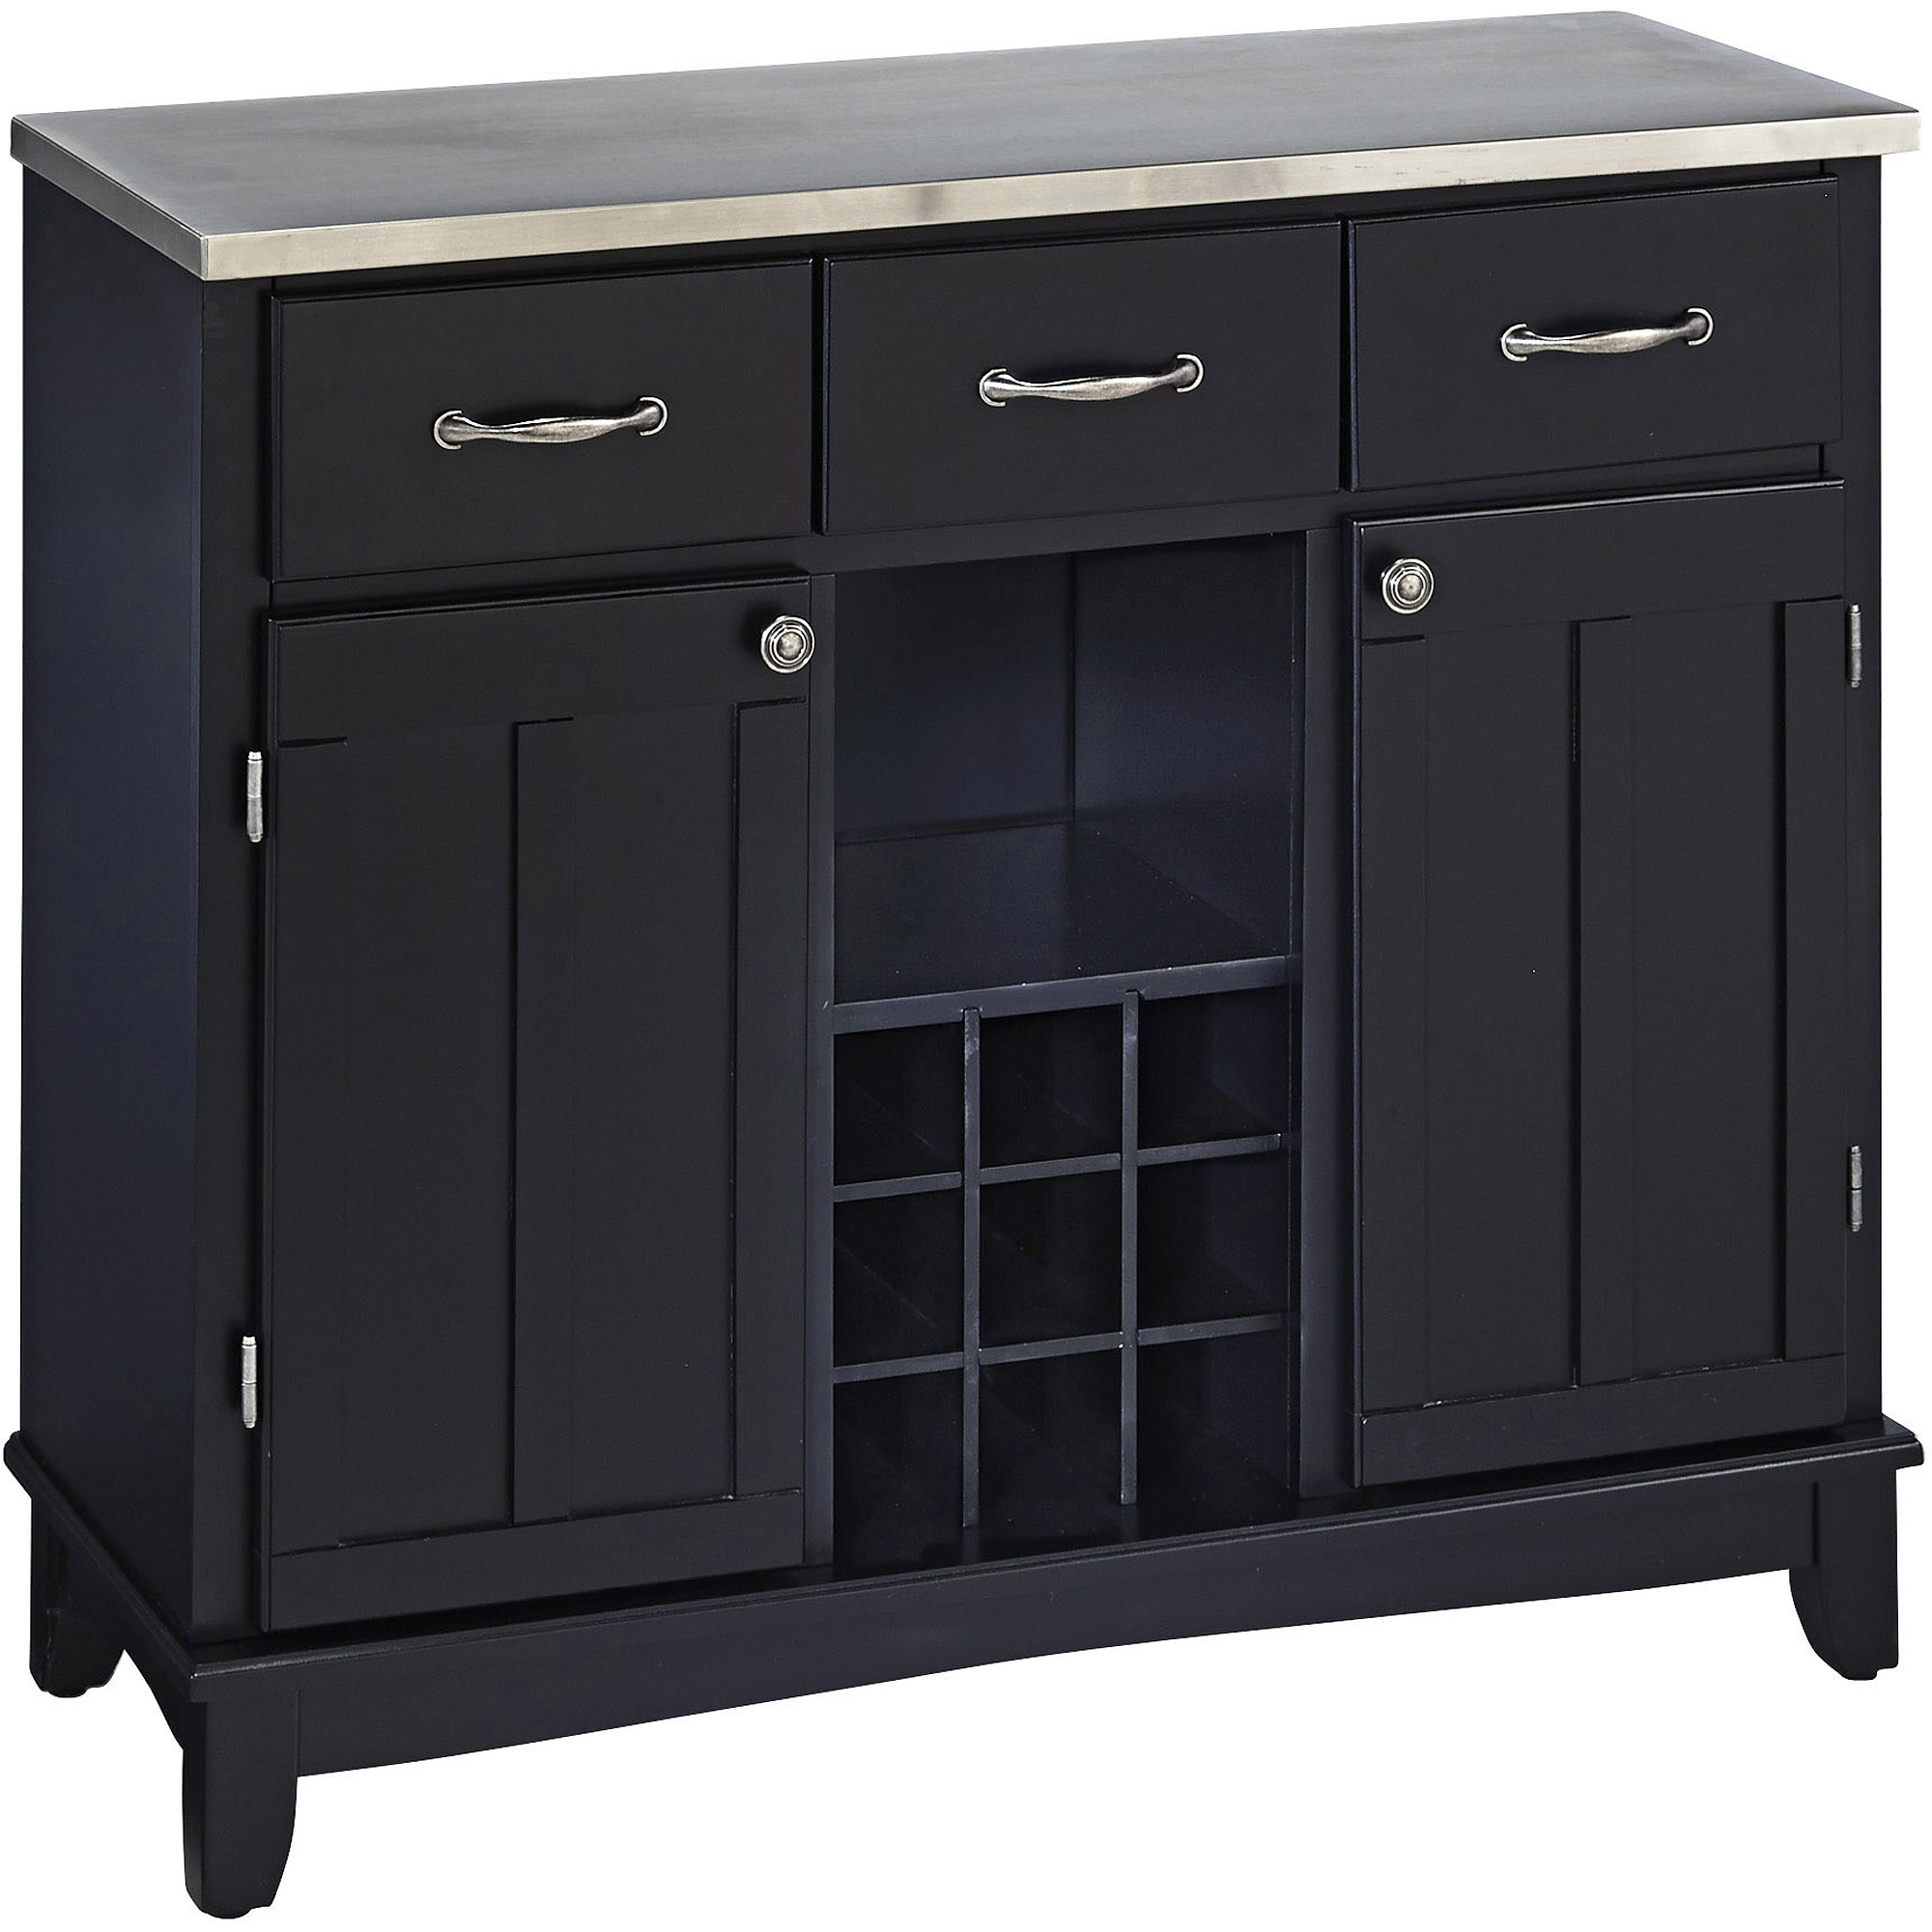 Home Styles Furniture Large Steel Top Buffet in Black by HomeStyles